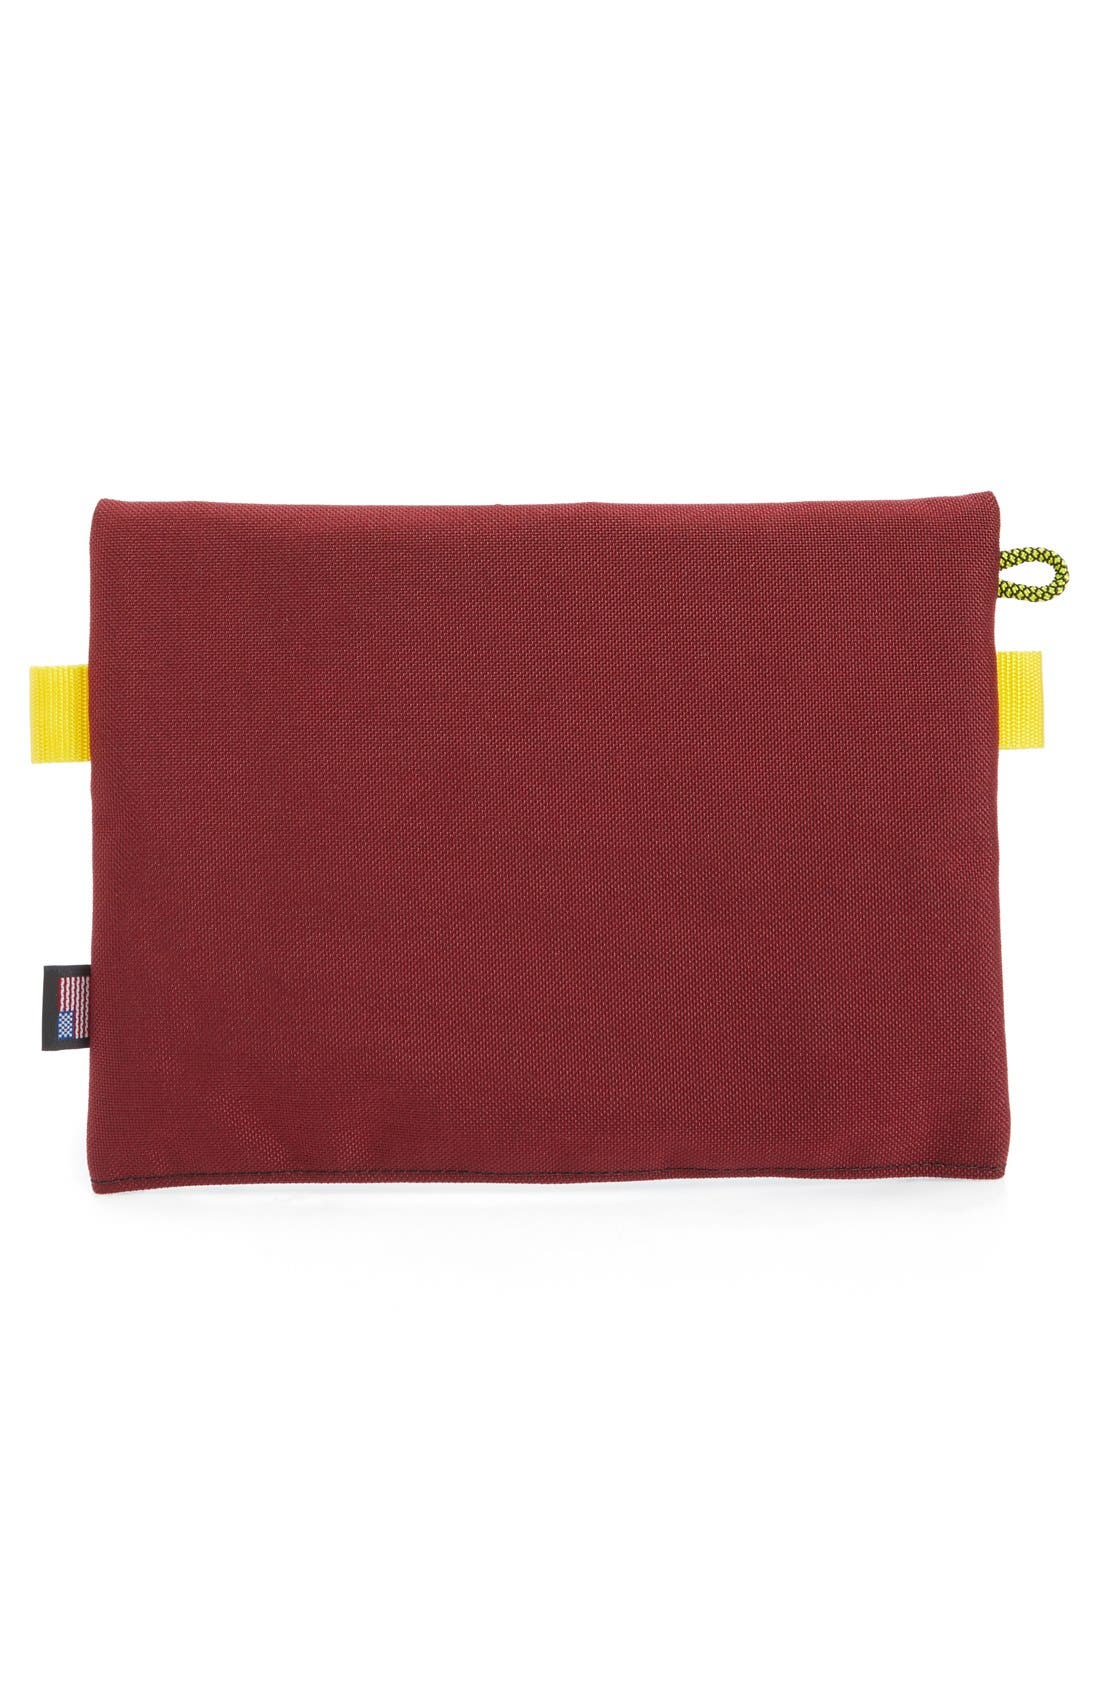 Topo Designs Accessory Bag,                             Alternate thumbnail 3, color,                             Burgundy/ Turquoise